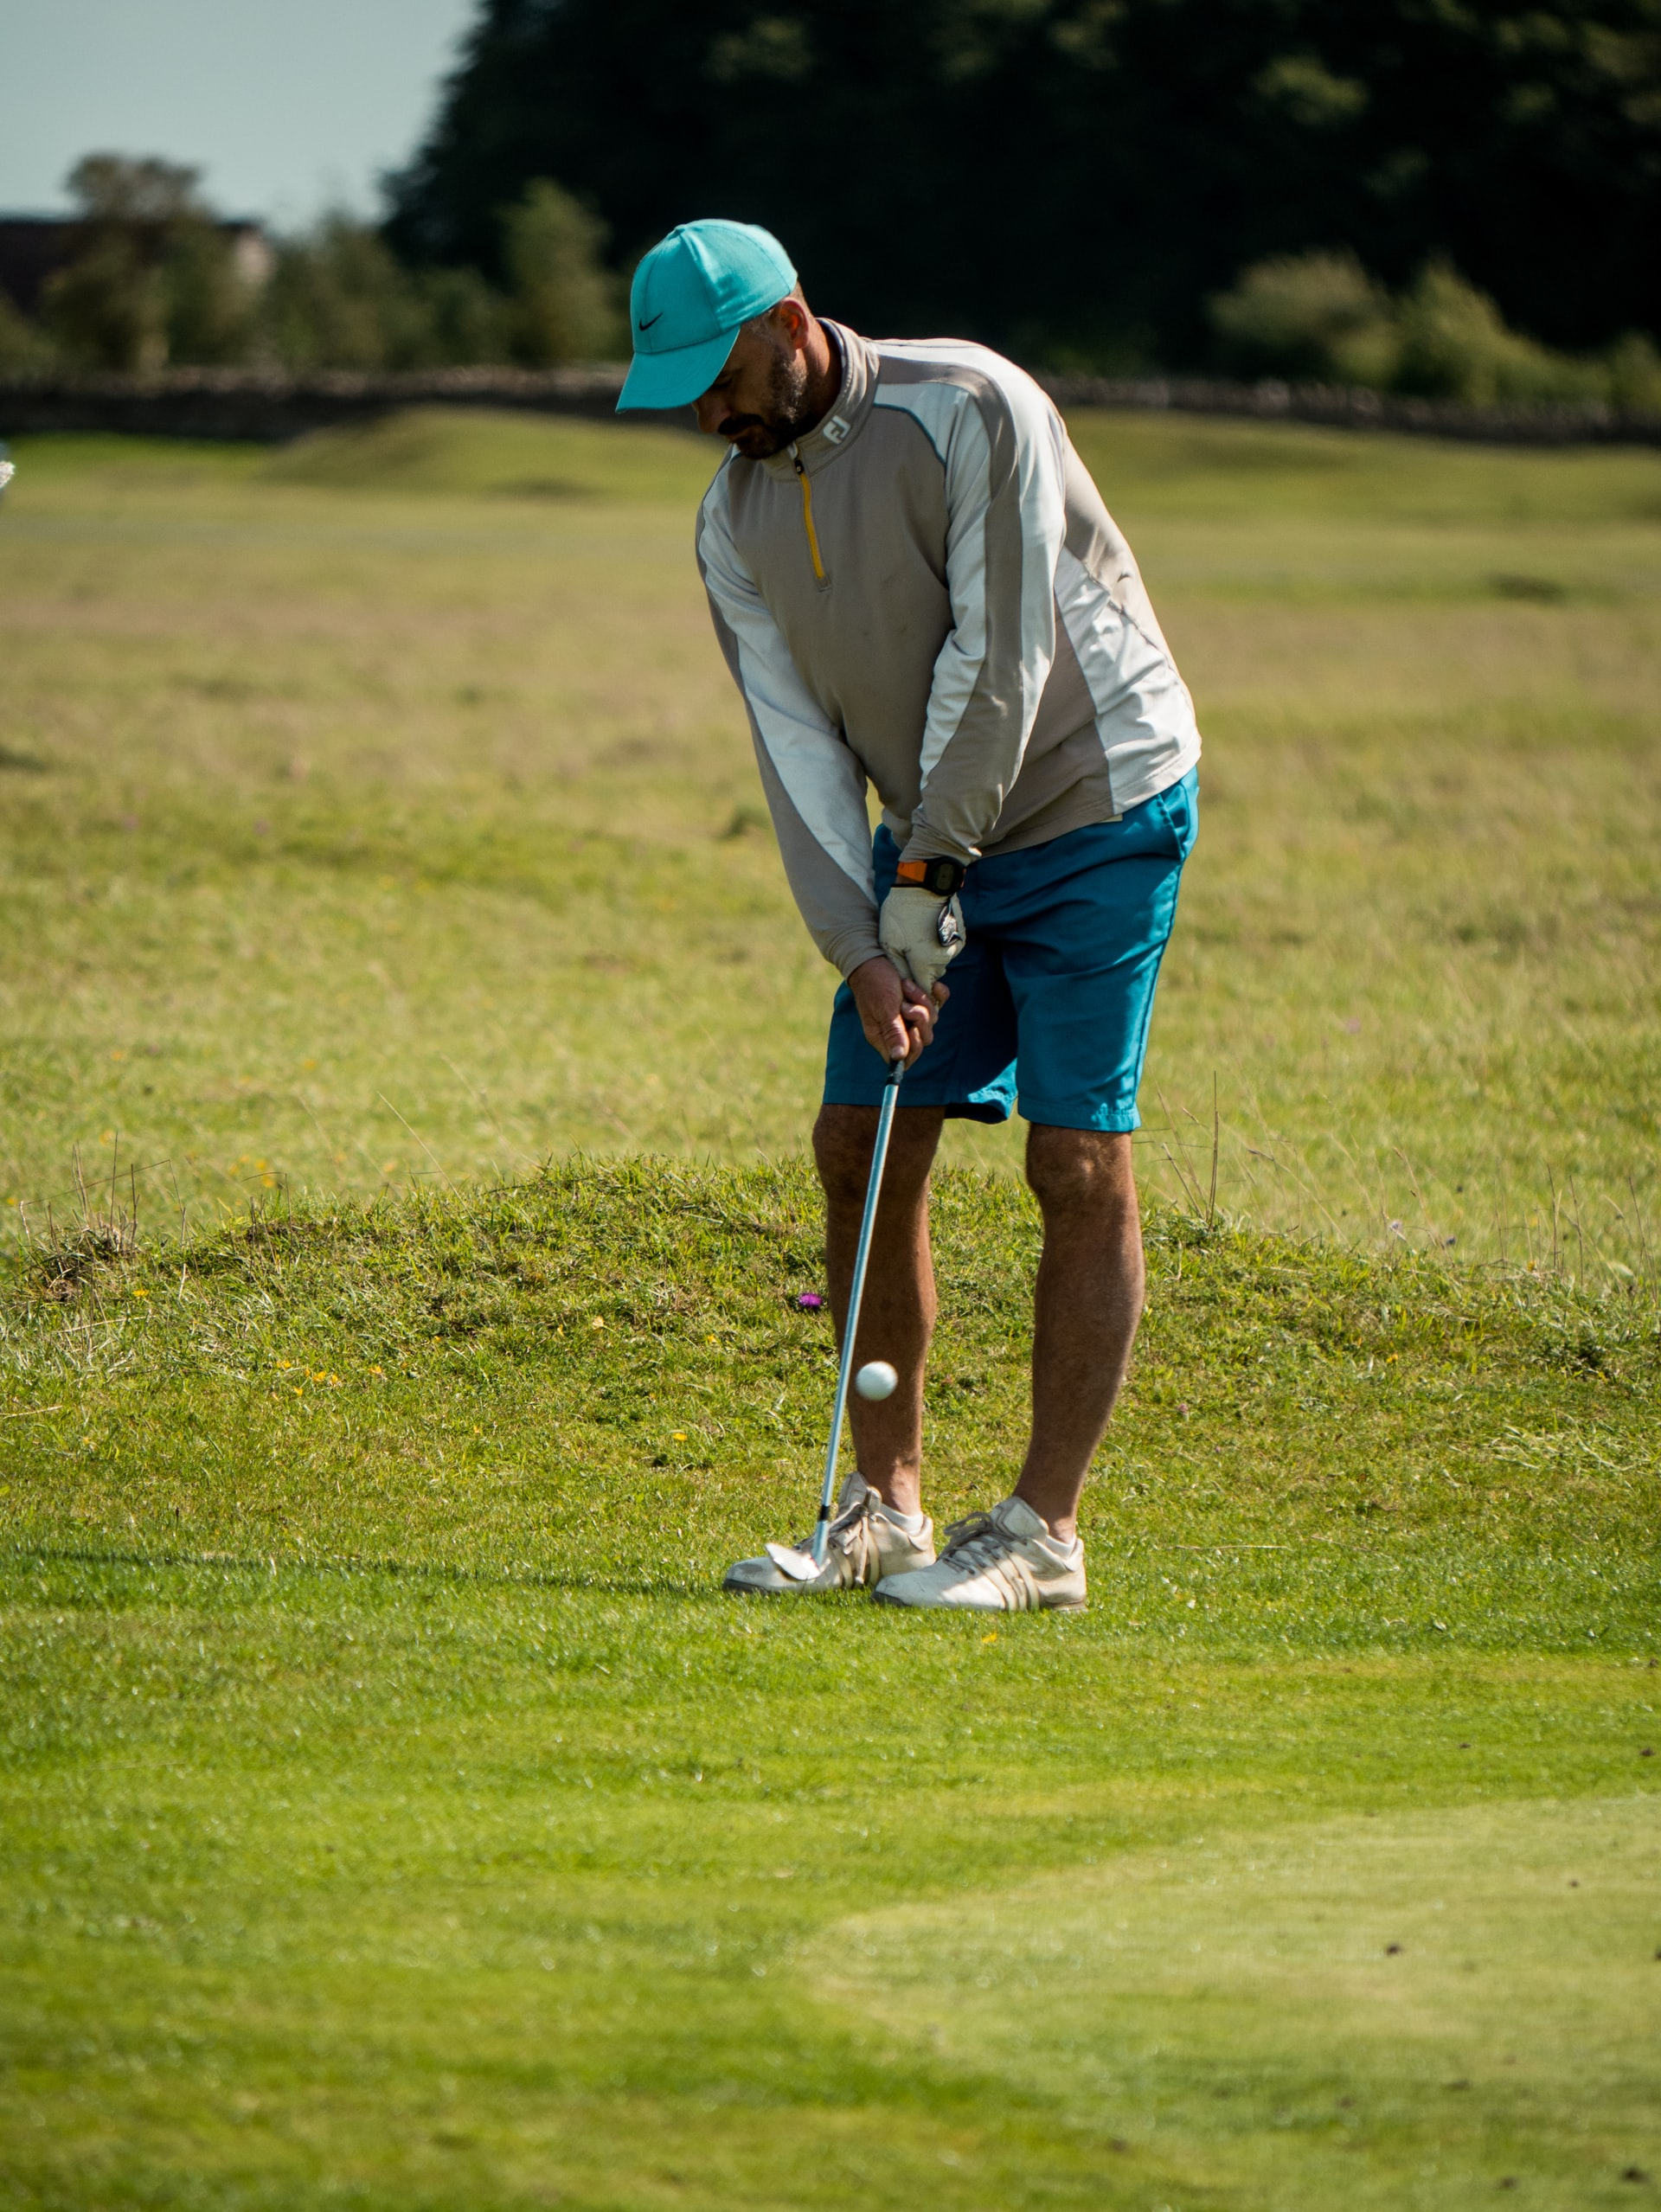 Chipping Putting Golf Course Article Image